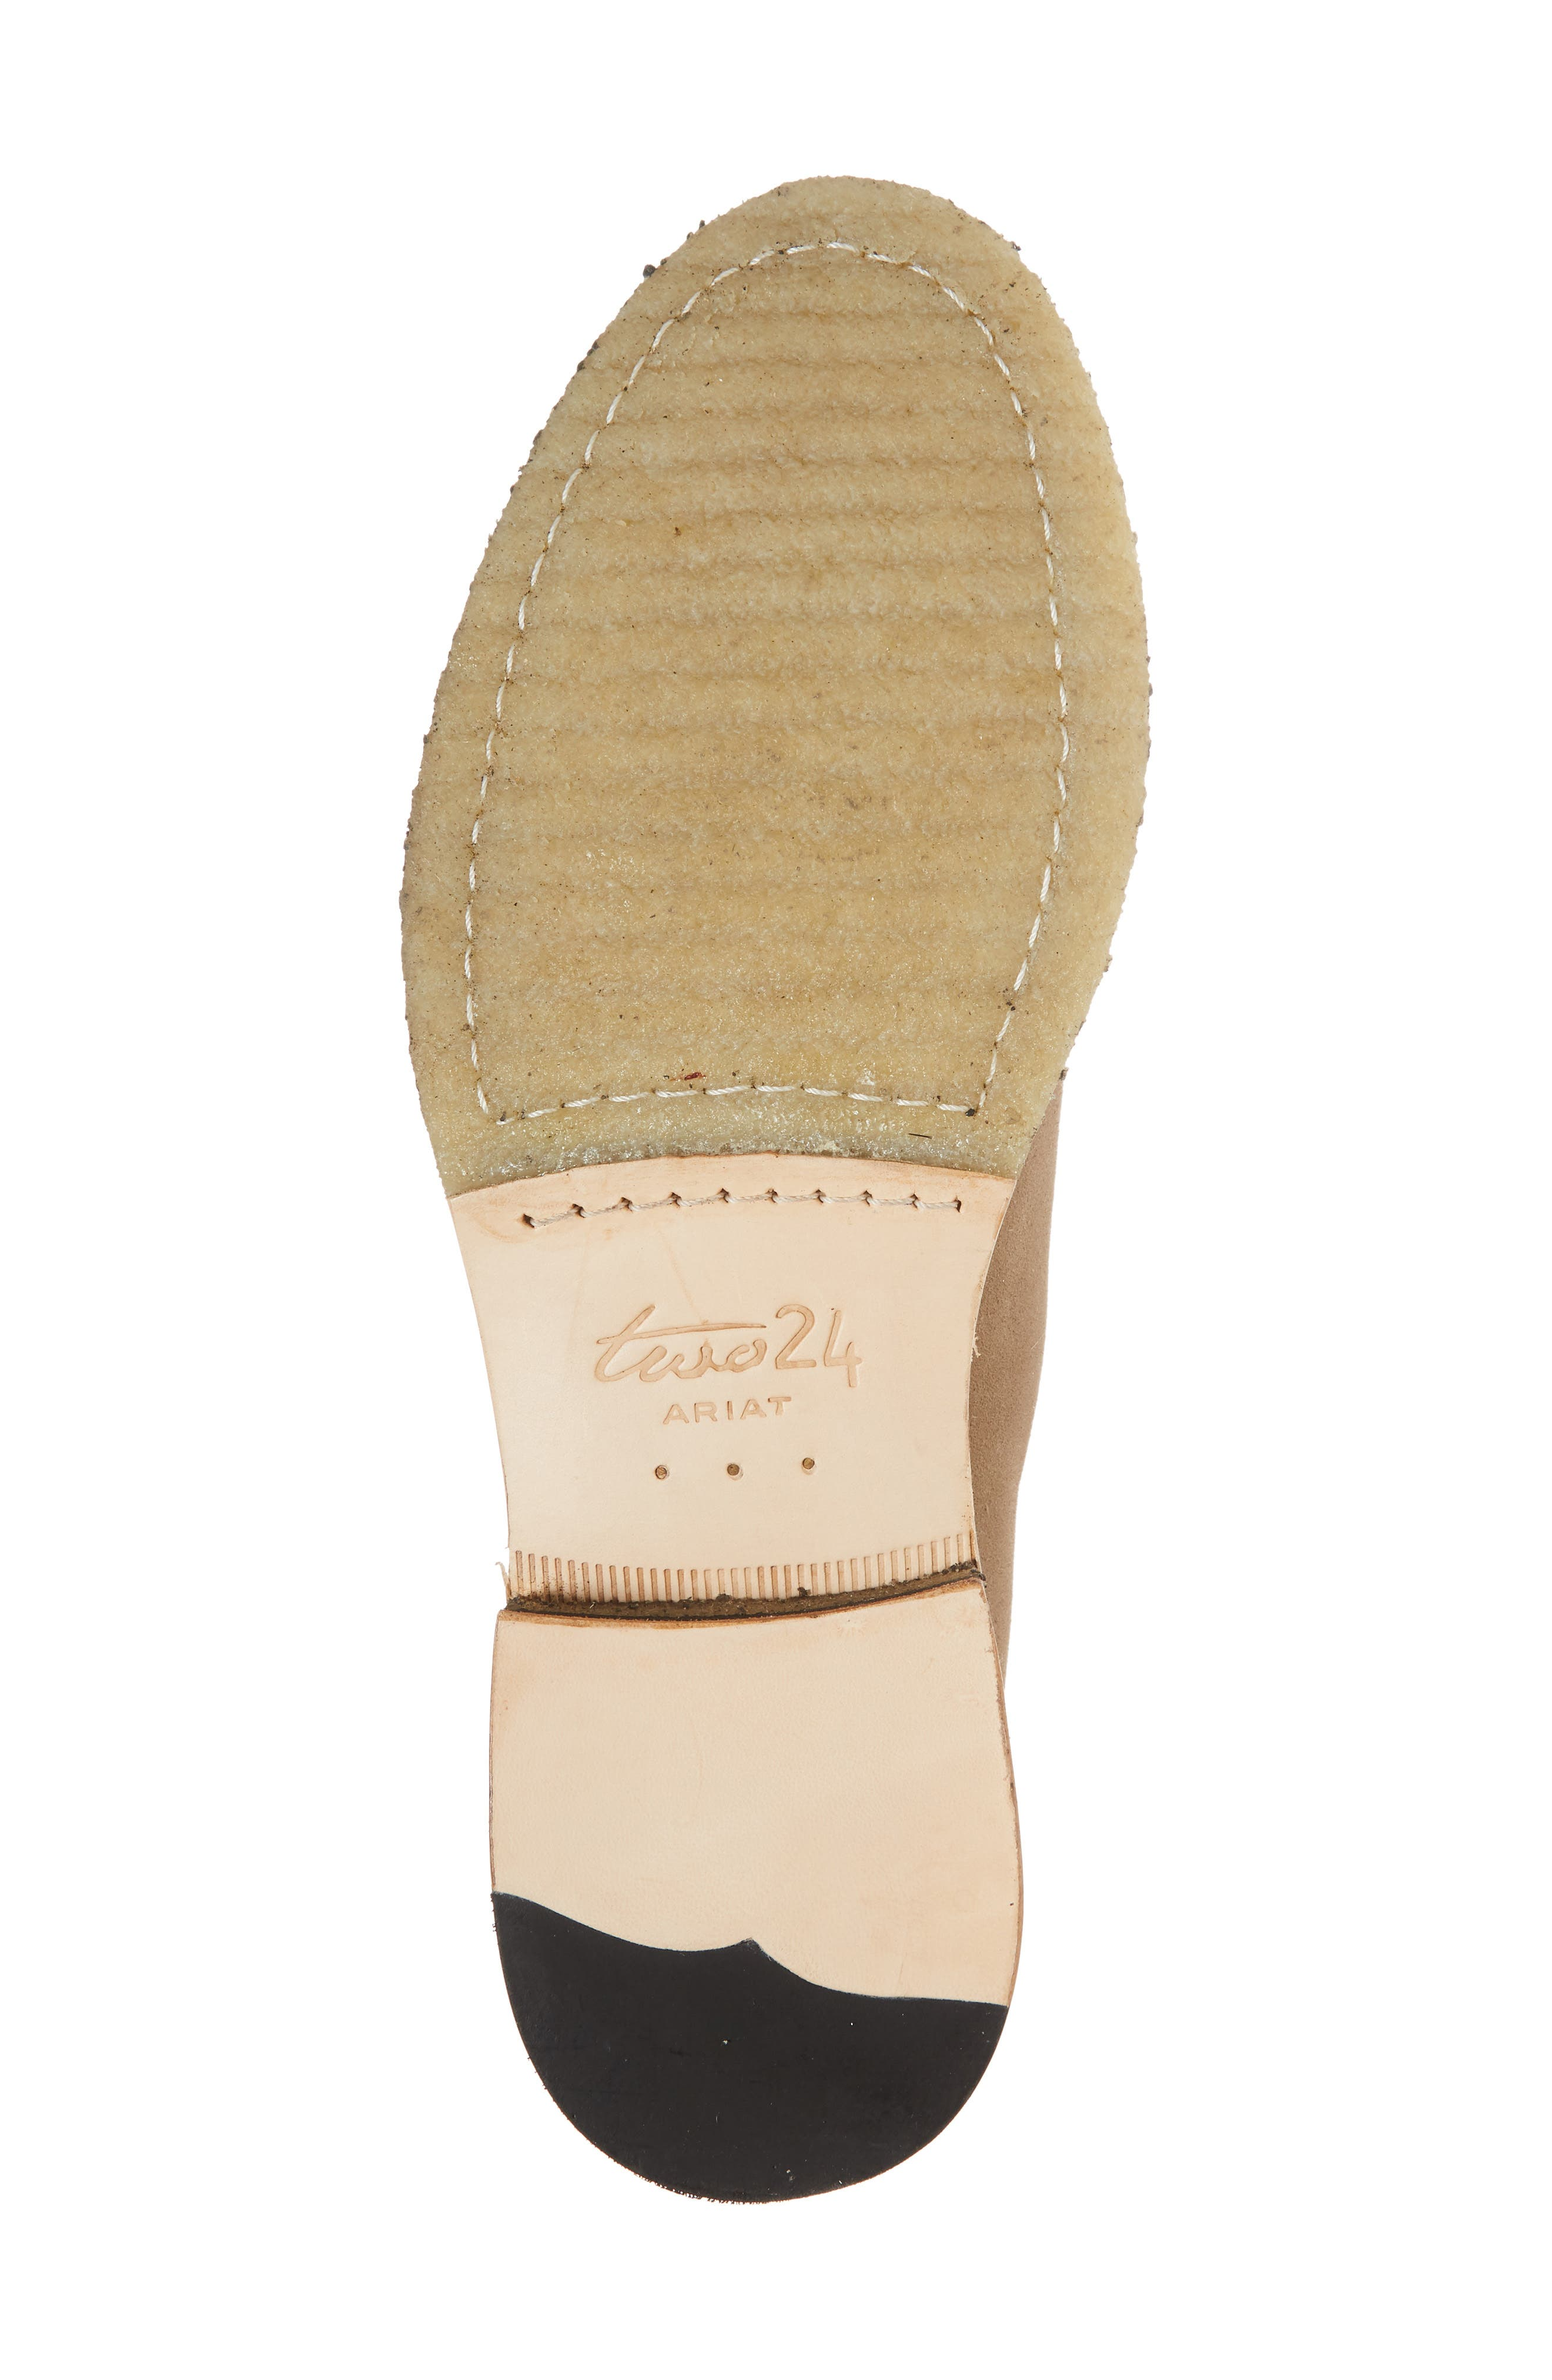 Two24 by Ariat Webster Boot,                             Alternate thumbnail 6, color,                             Biscotti Suede